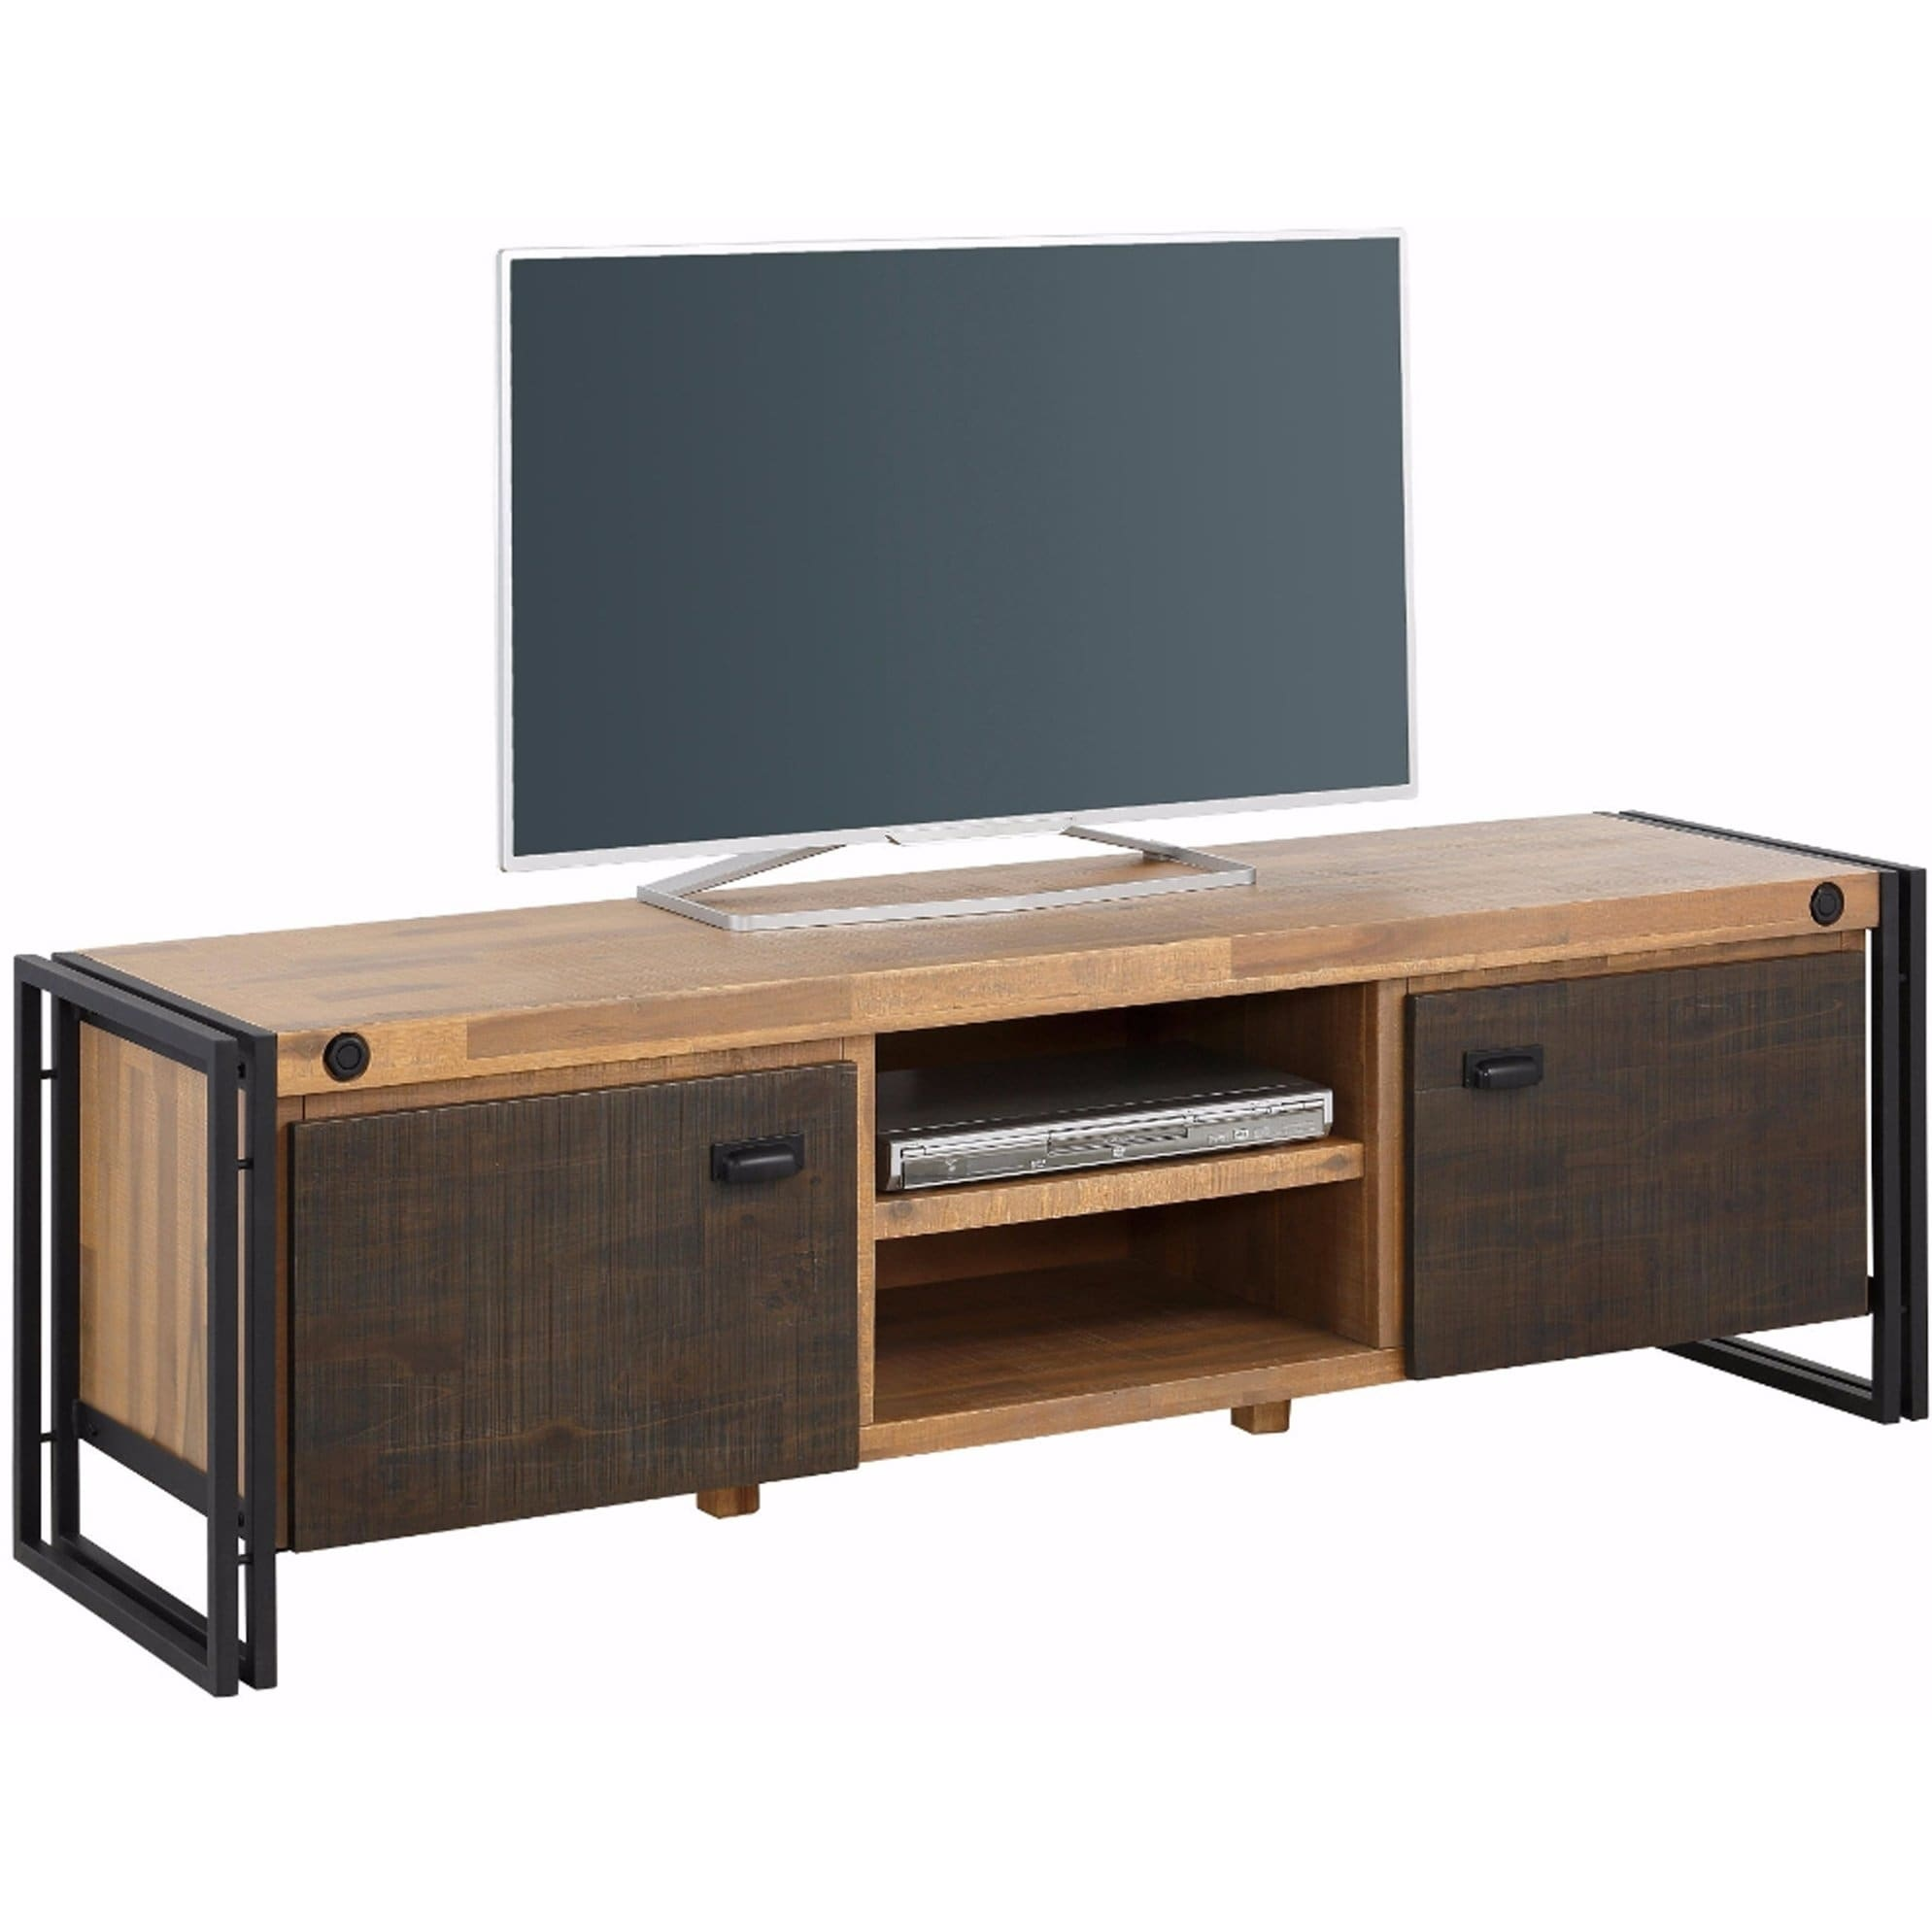 Tv Lowboard Industriedesign Katashi Acacia Wood And Metal 2 Door Tv Lowboard Entertainment Center